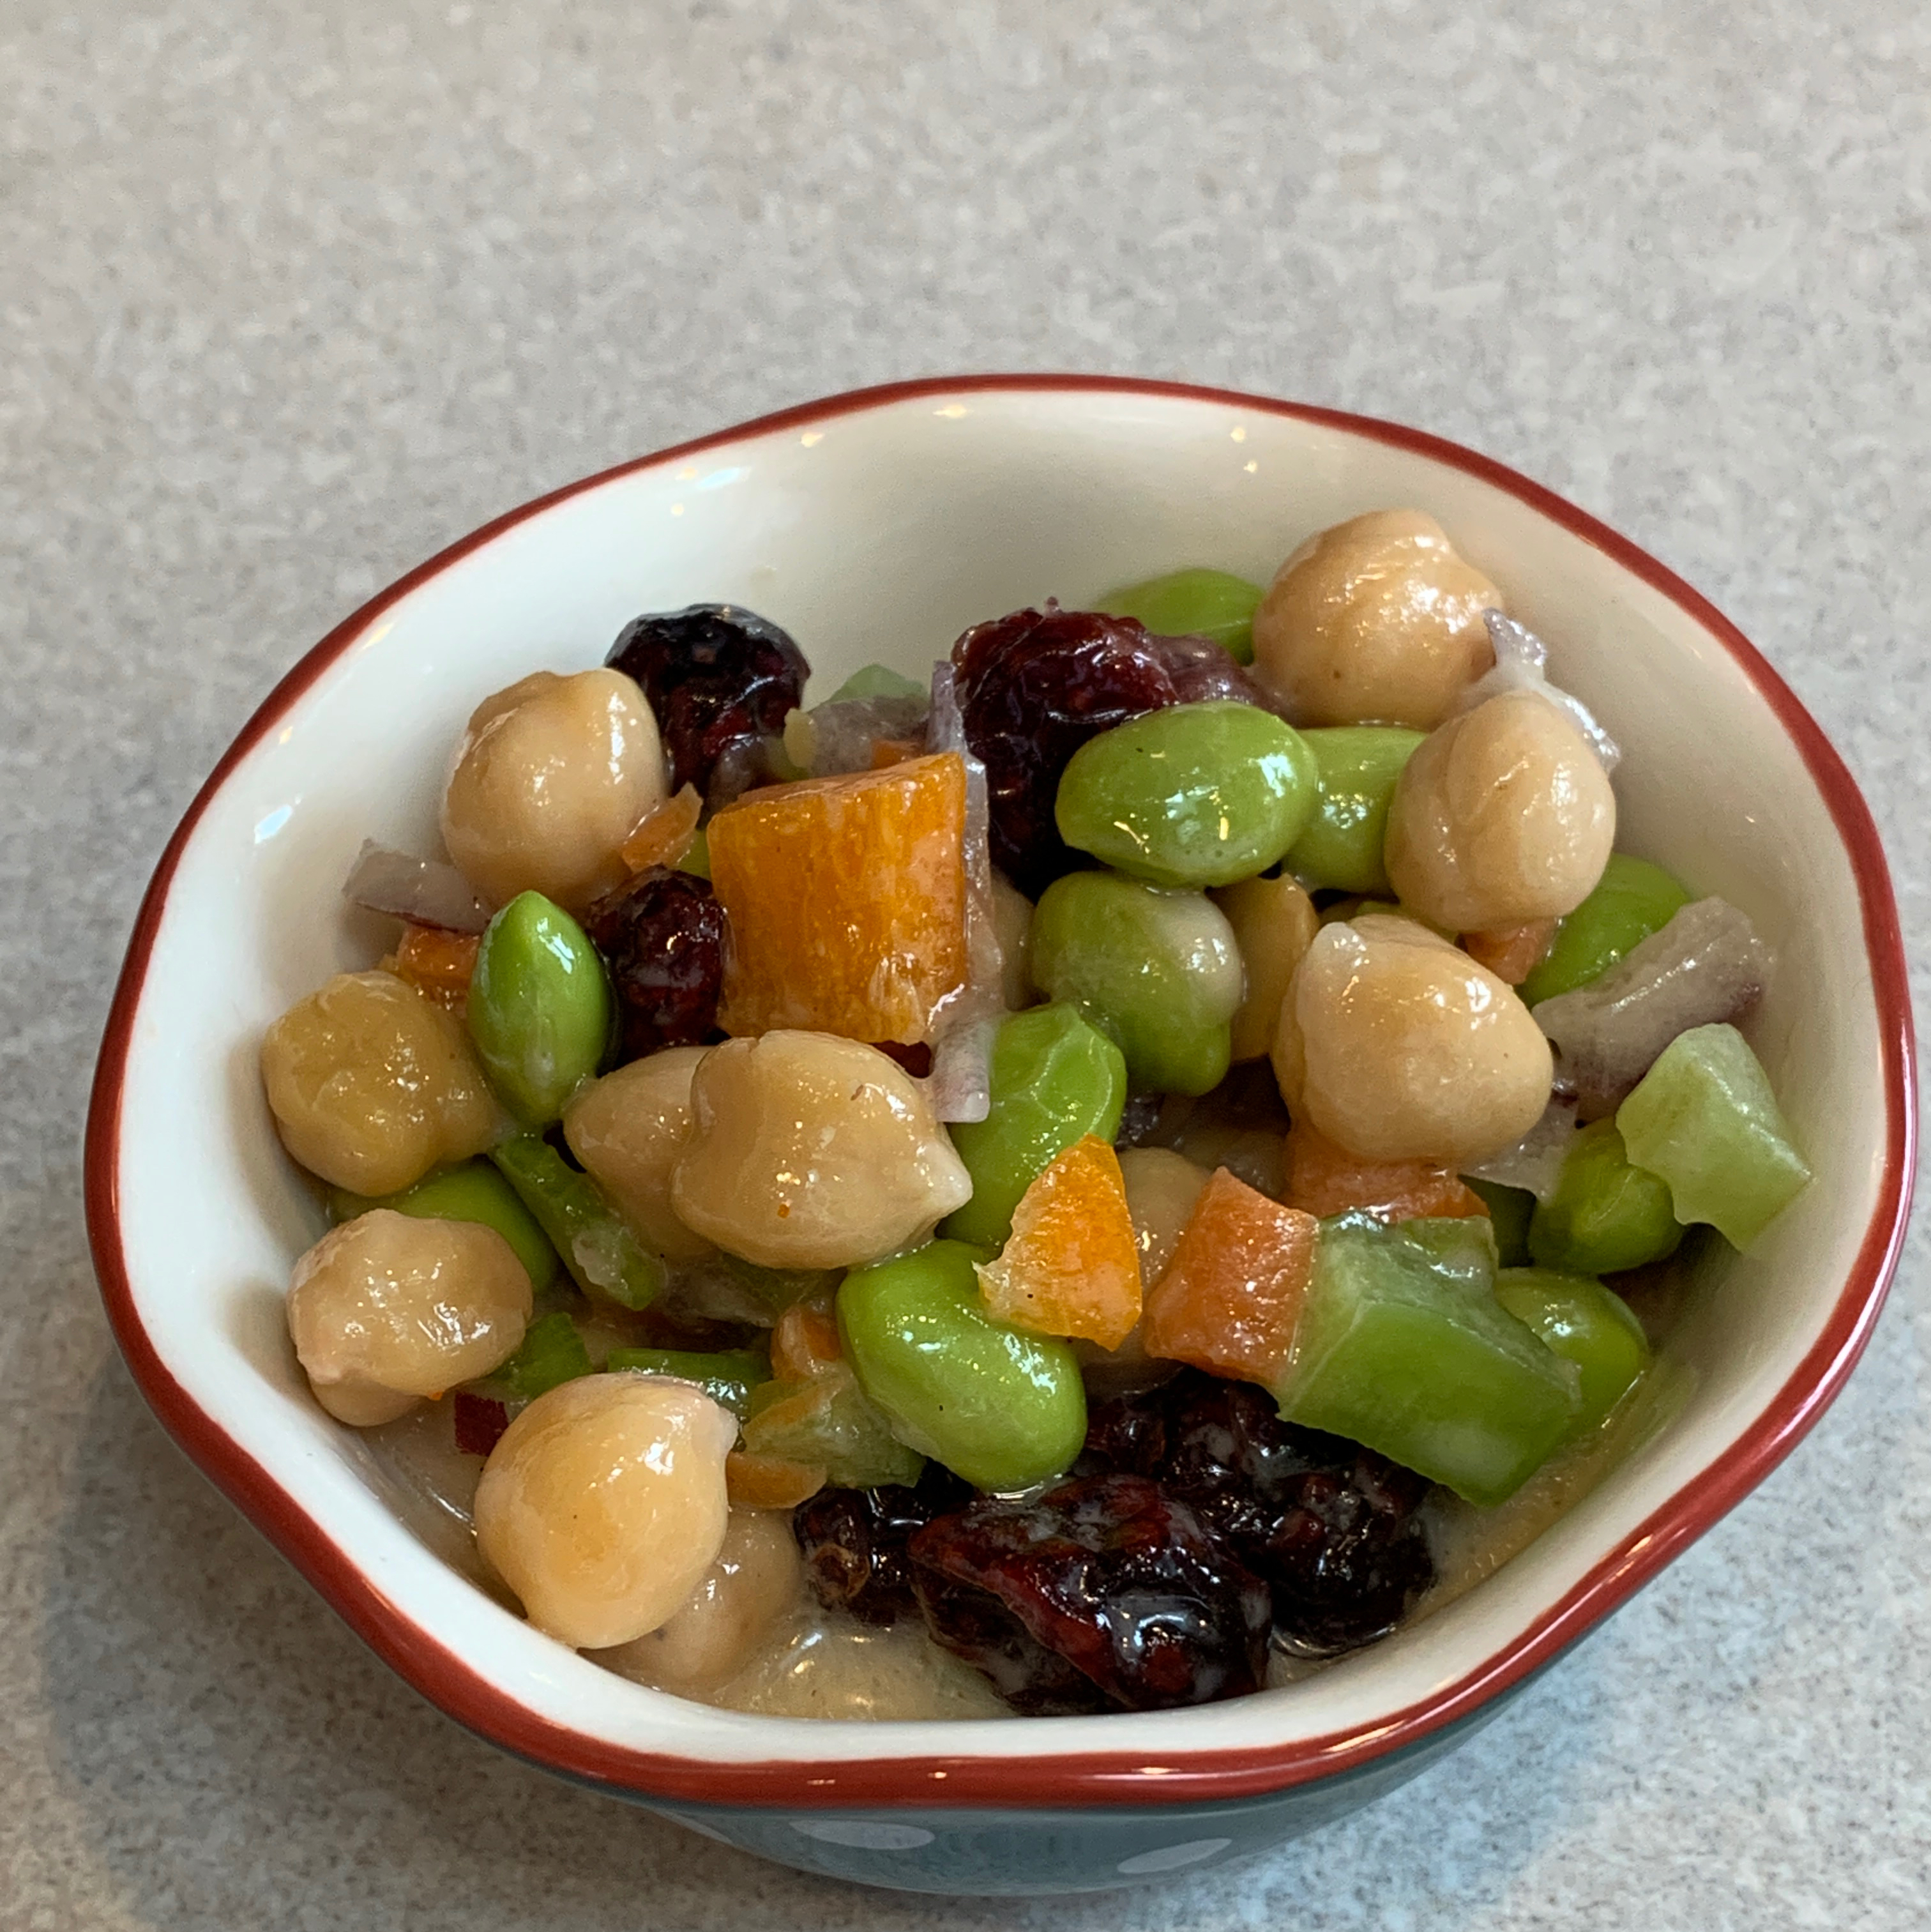 Chickpea and Edamame Salad Angela Petersen Sherbert